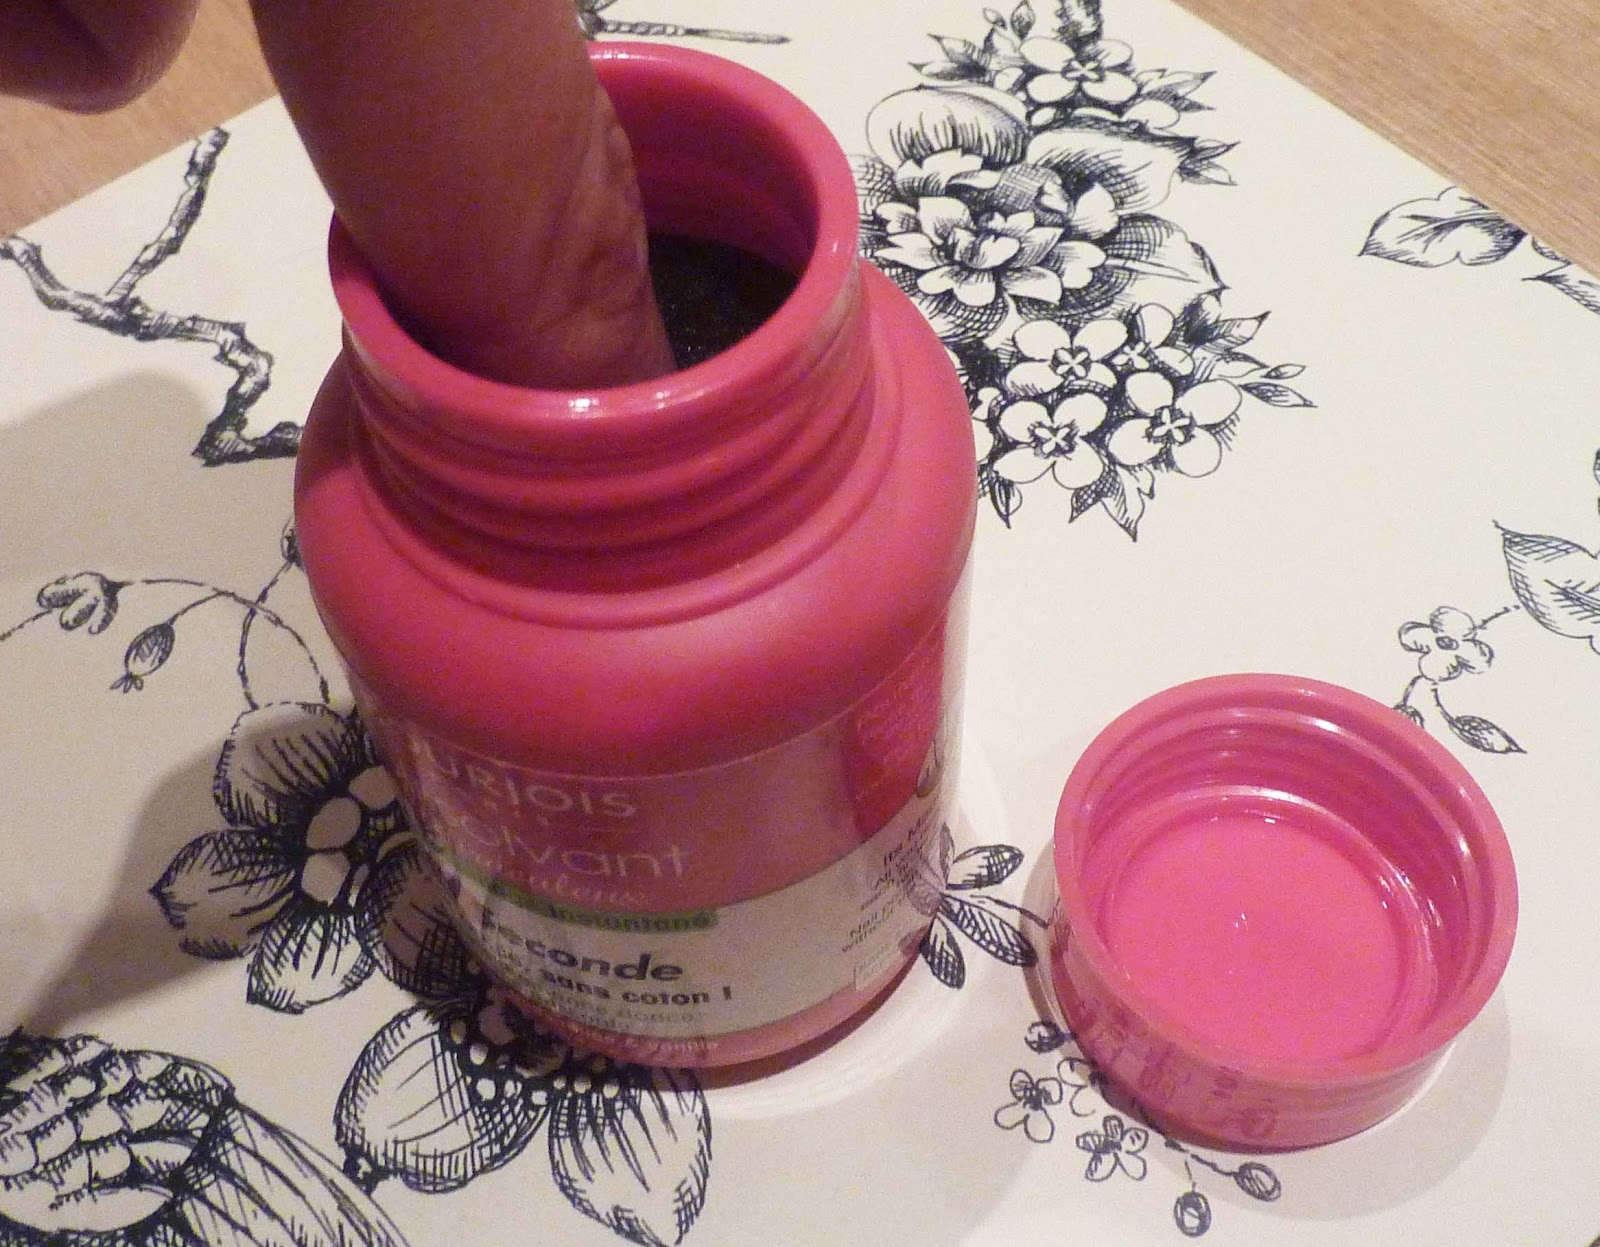 BEAUTY & LE CHIC: Say BONJOUR to Bourjois Magic Nail Polish Remover